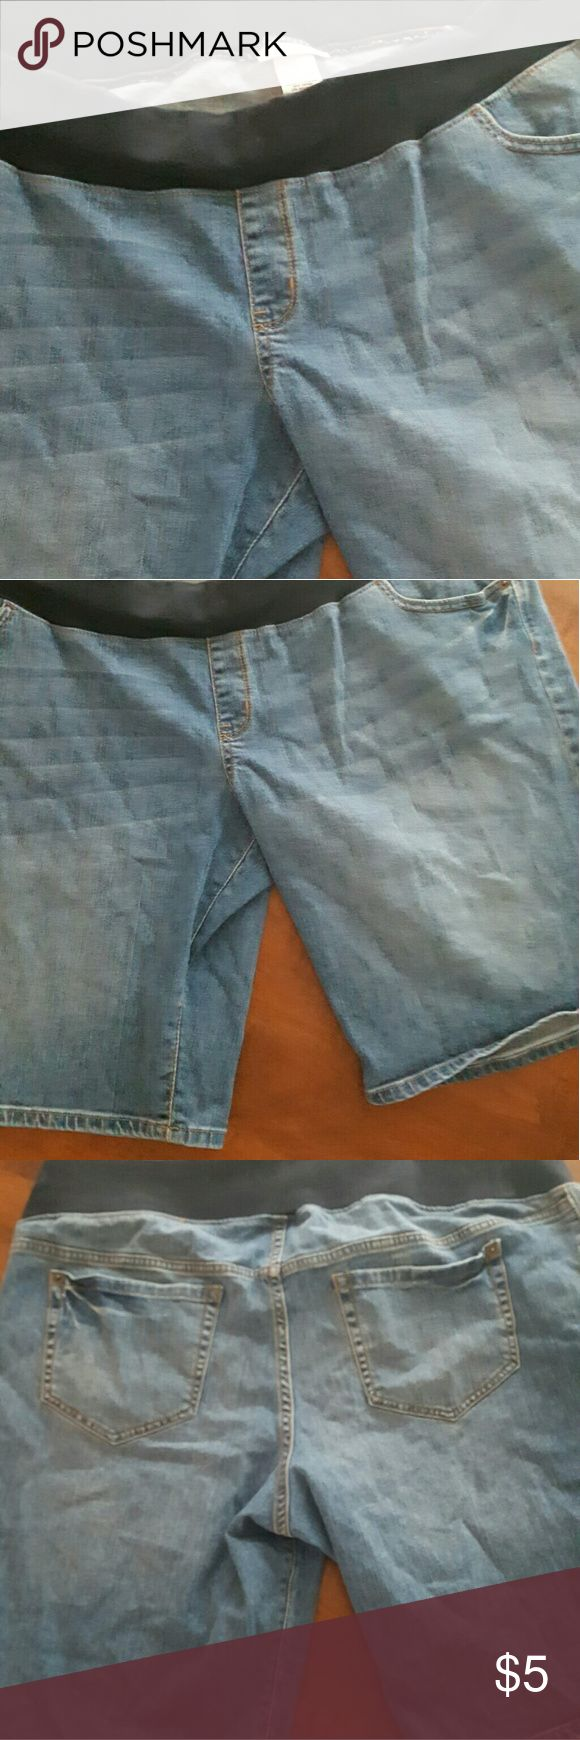 Denim Maternity Shorts Denim maternity shorts could also be used as plus shorts Liz Lange for Target Shorts Jean Shorts